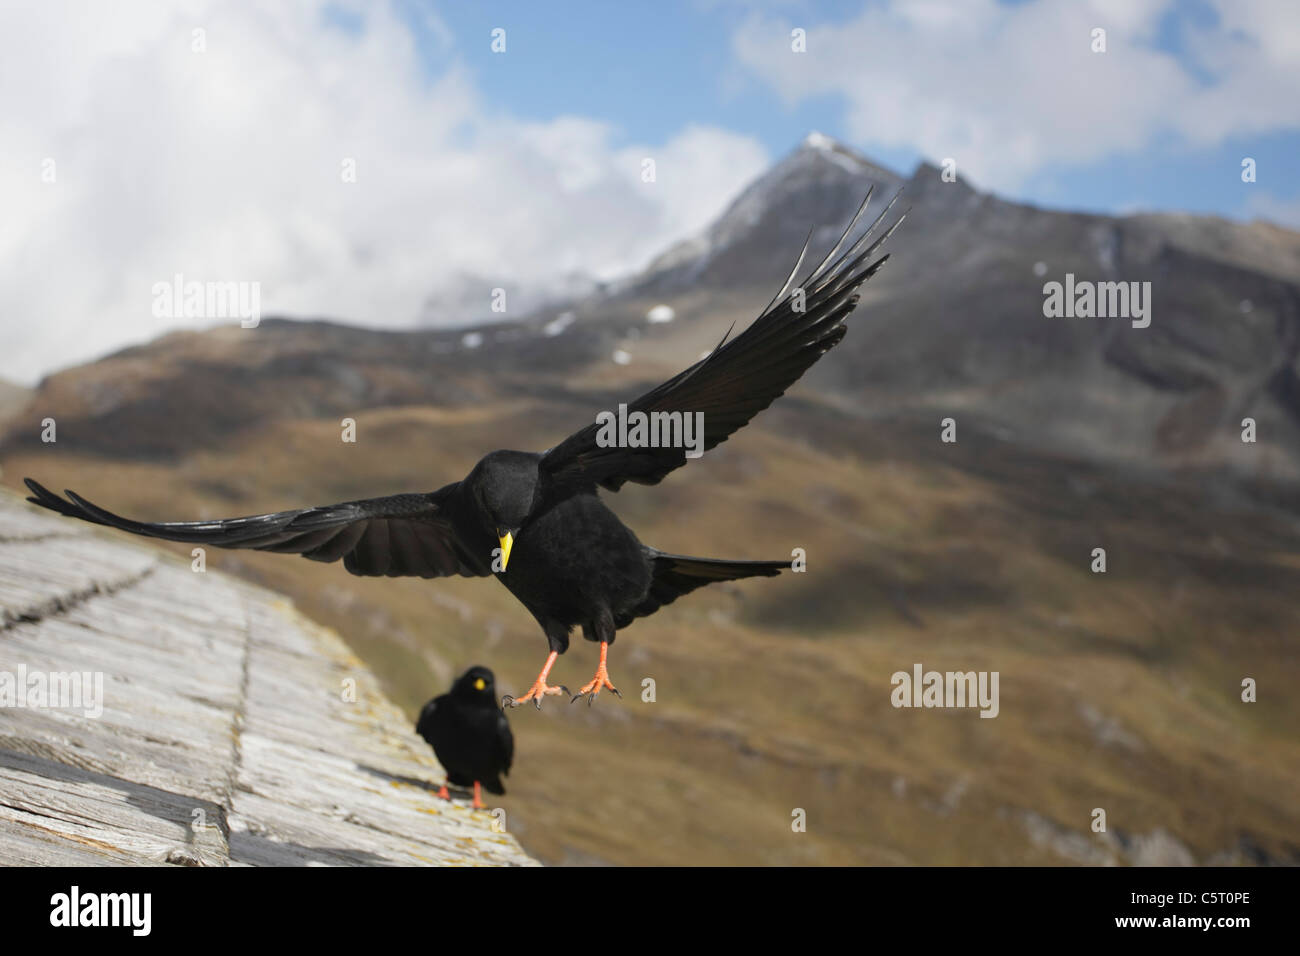 Austria, View of alpine chough flying above roof - Stock Image